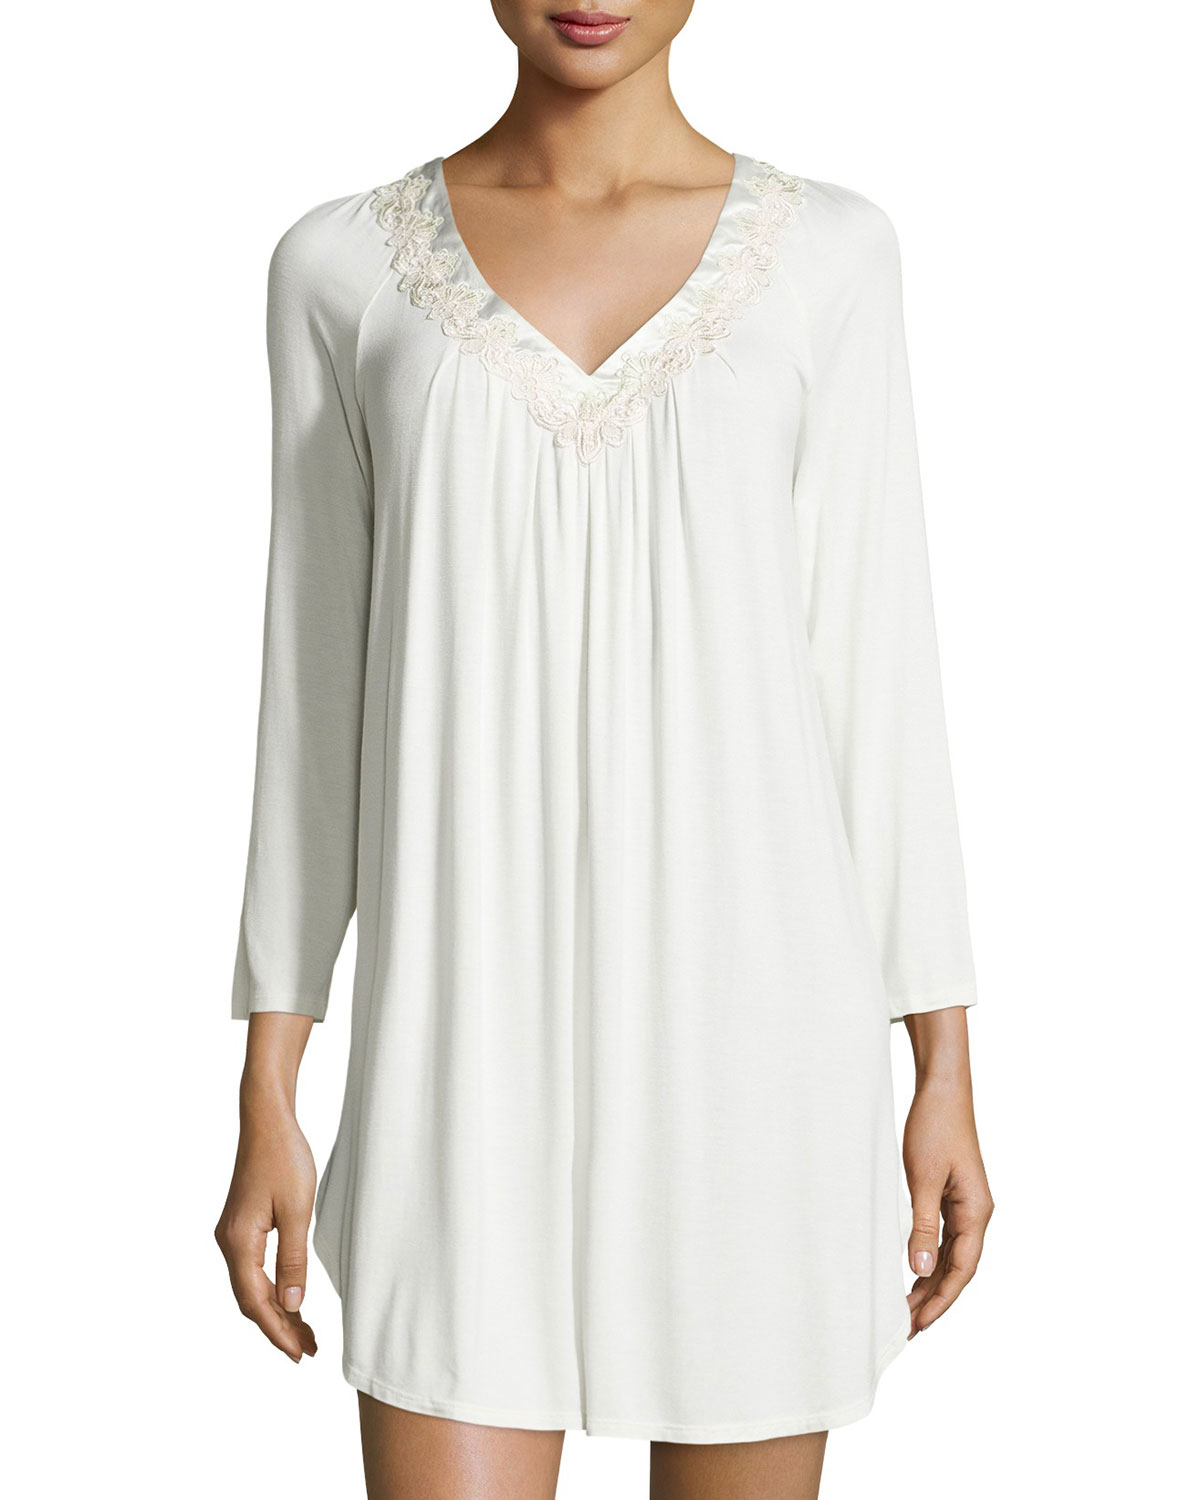 lyst oscar de la renta luxe jersey knit sleep shirt in white